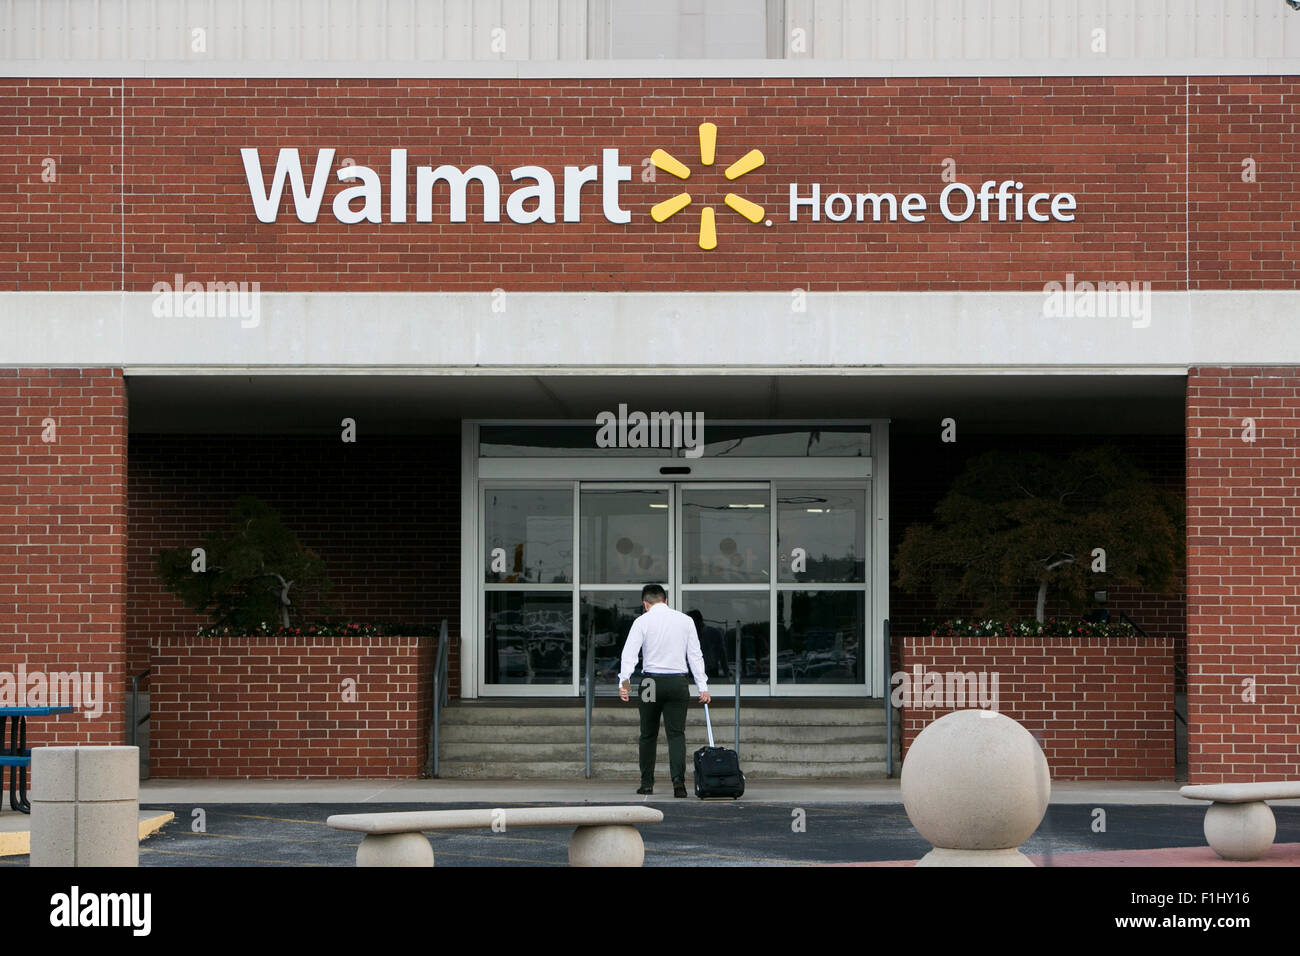 outside home office pod logo sign outside of the walmart headquarters known as home office in bentonville arkansas on august 18 2015